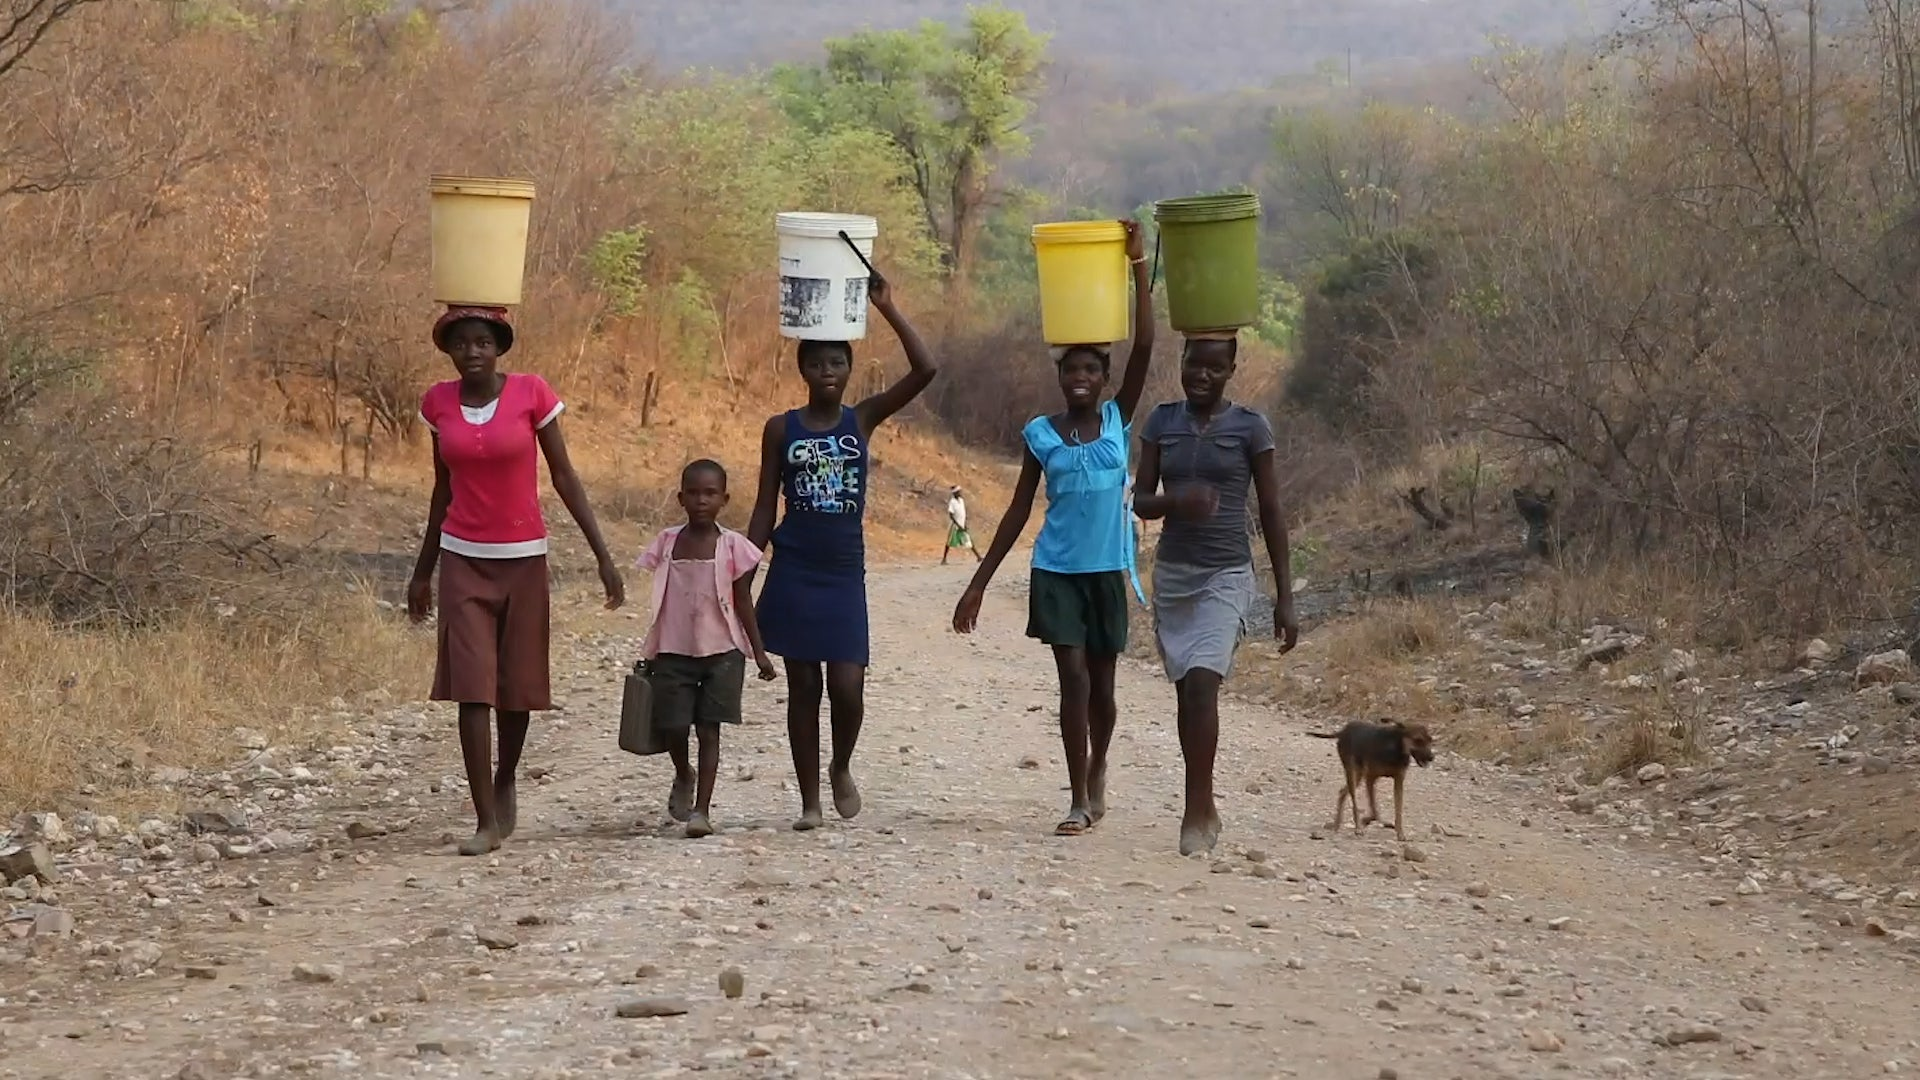 Nearly 2 million people in Zimbabwe's capital lack running water, as the system breaks down as a result of drought and crumbling infrastructure